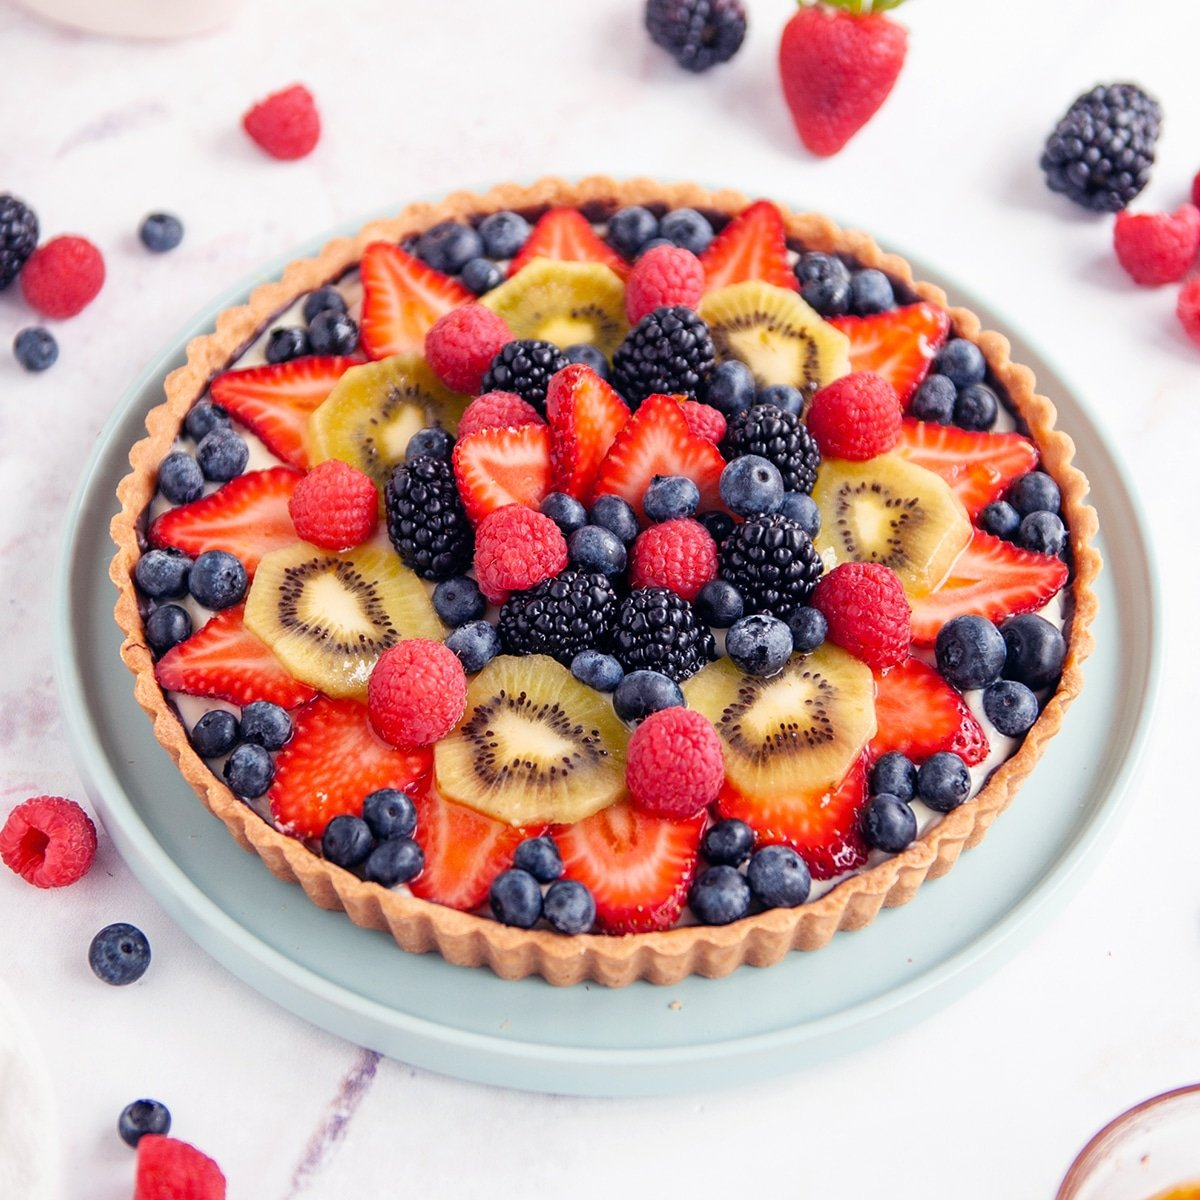 fruit tart on white background with berries surrounding